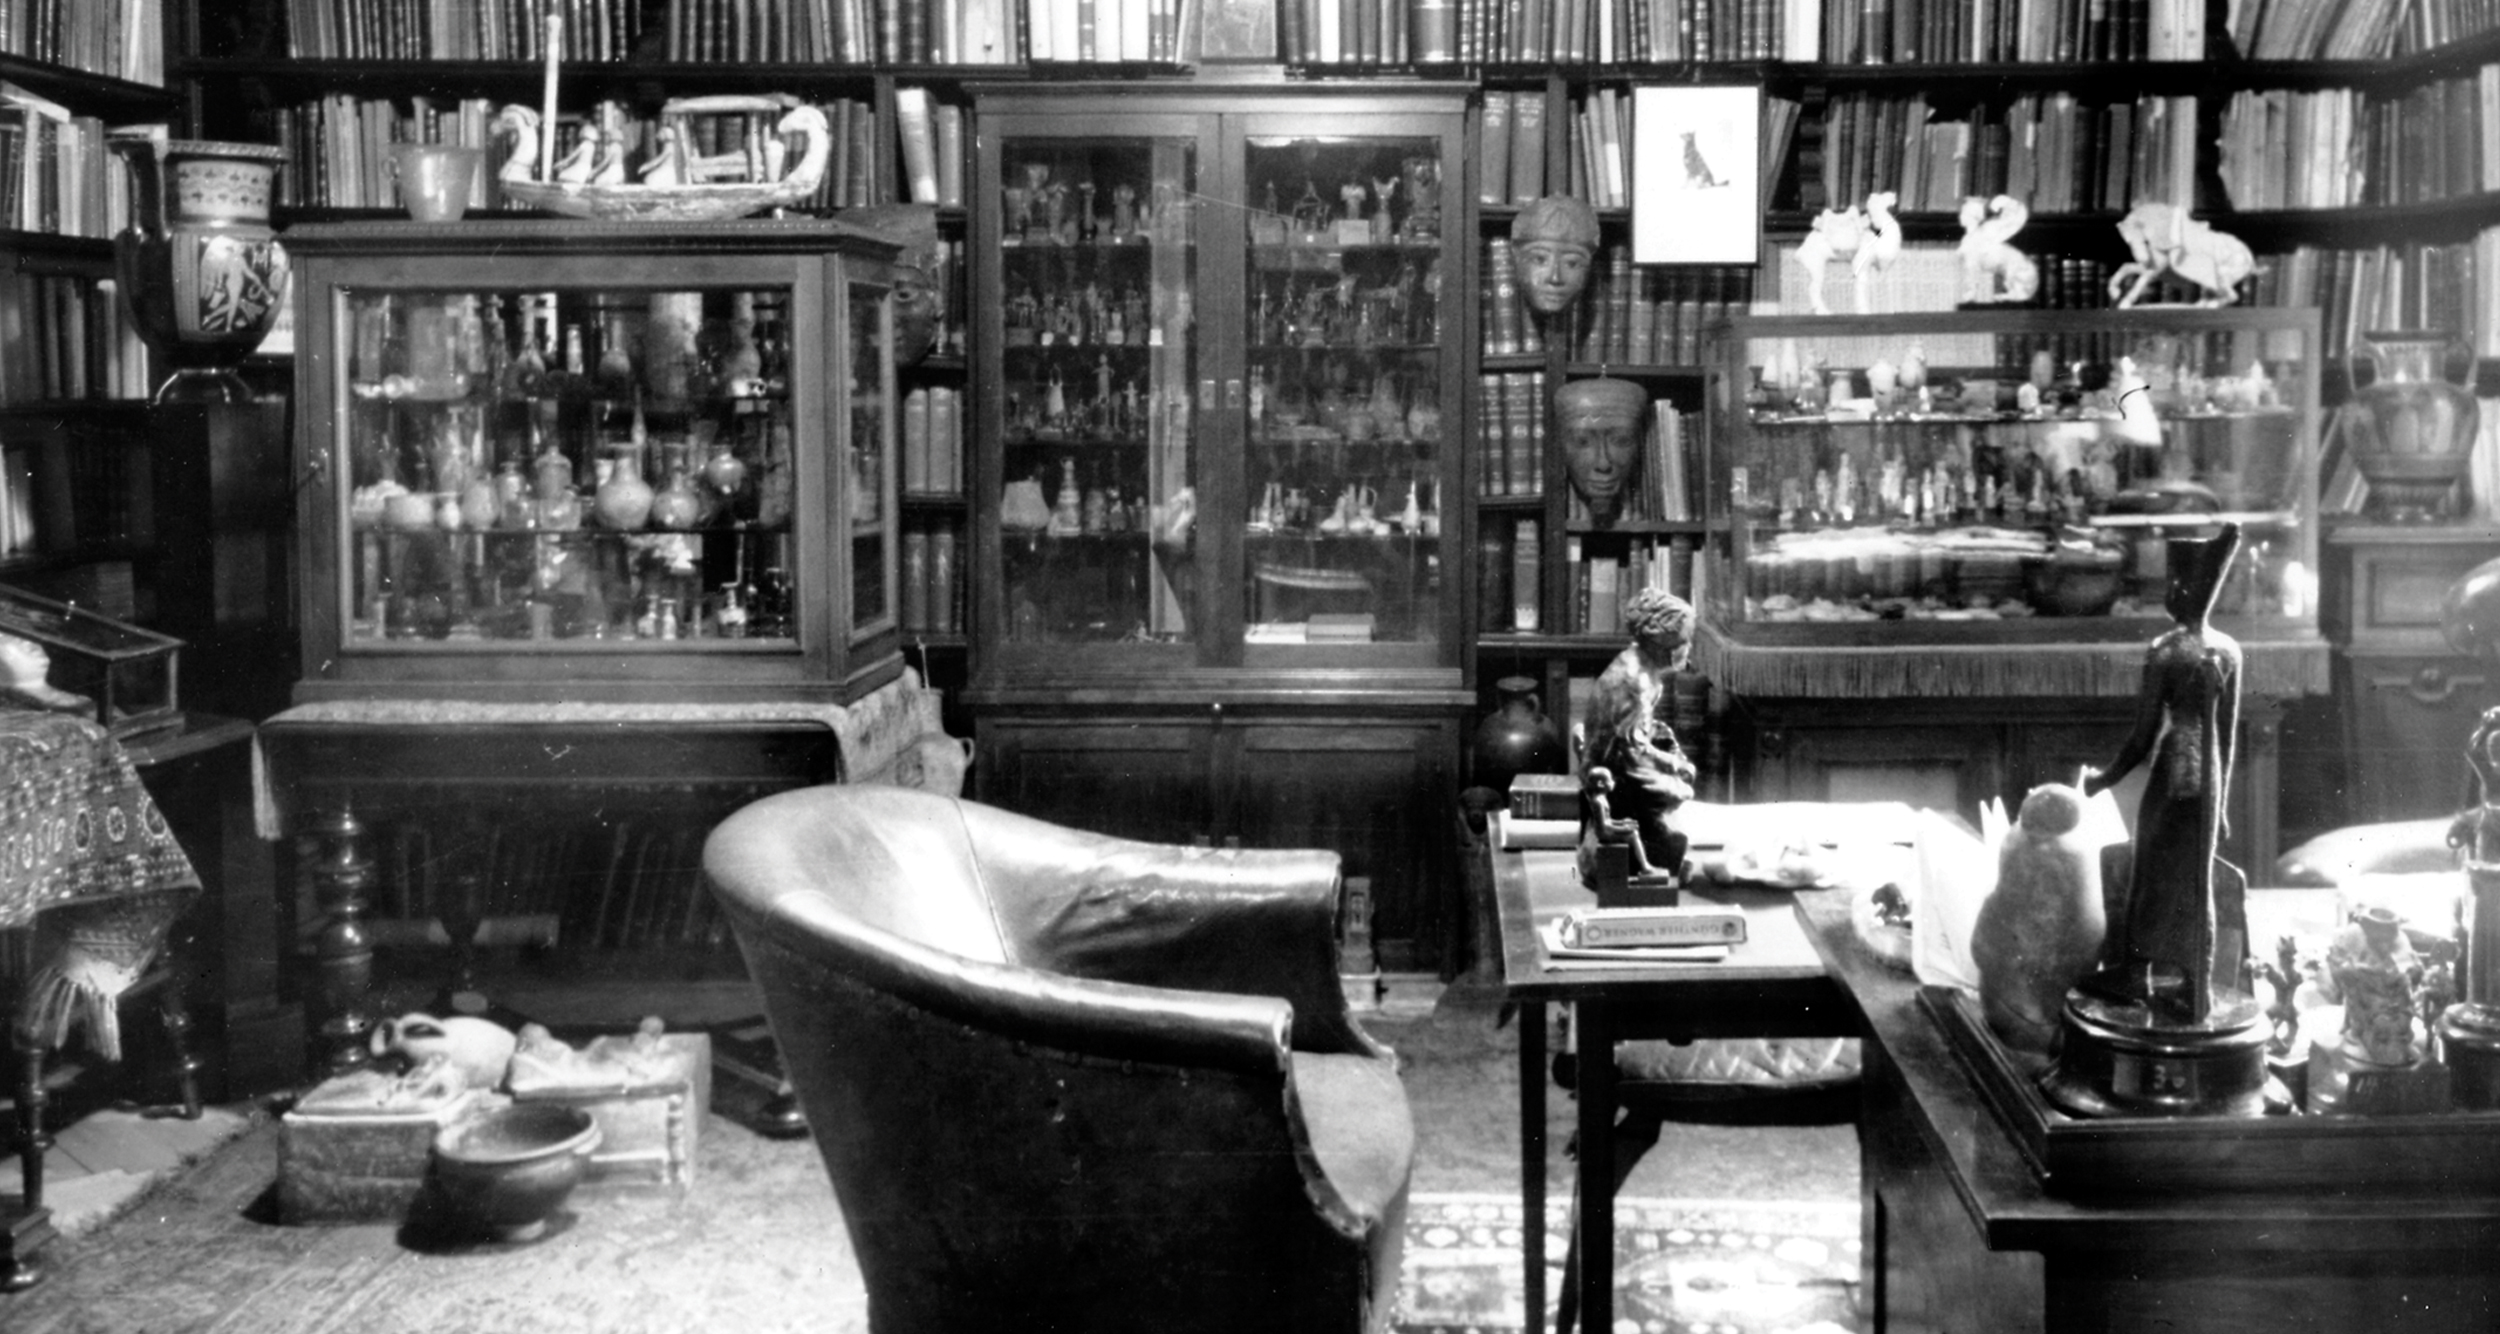 Freud's office in black and white